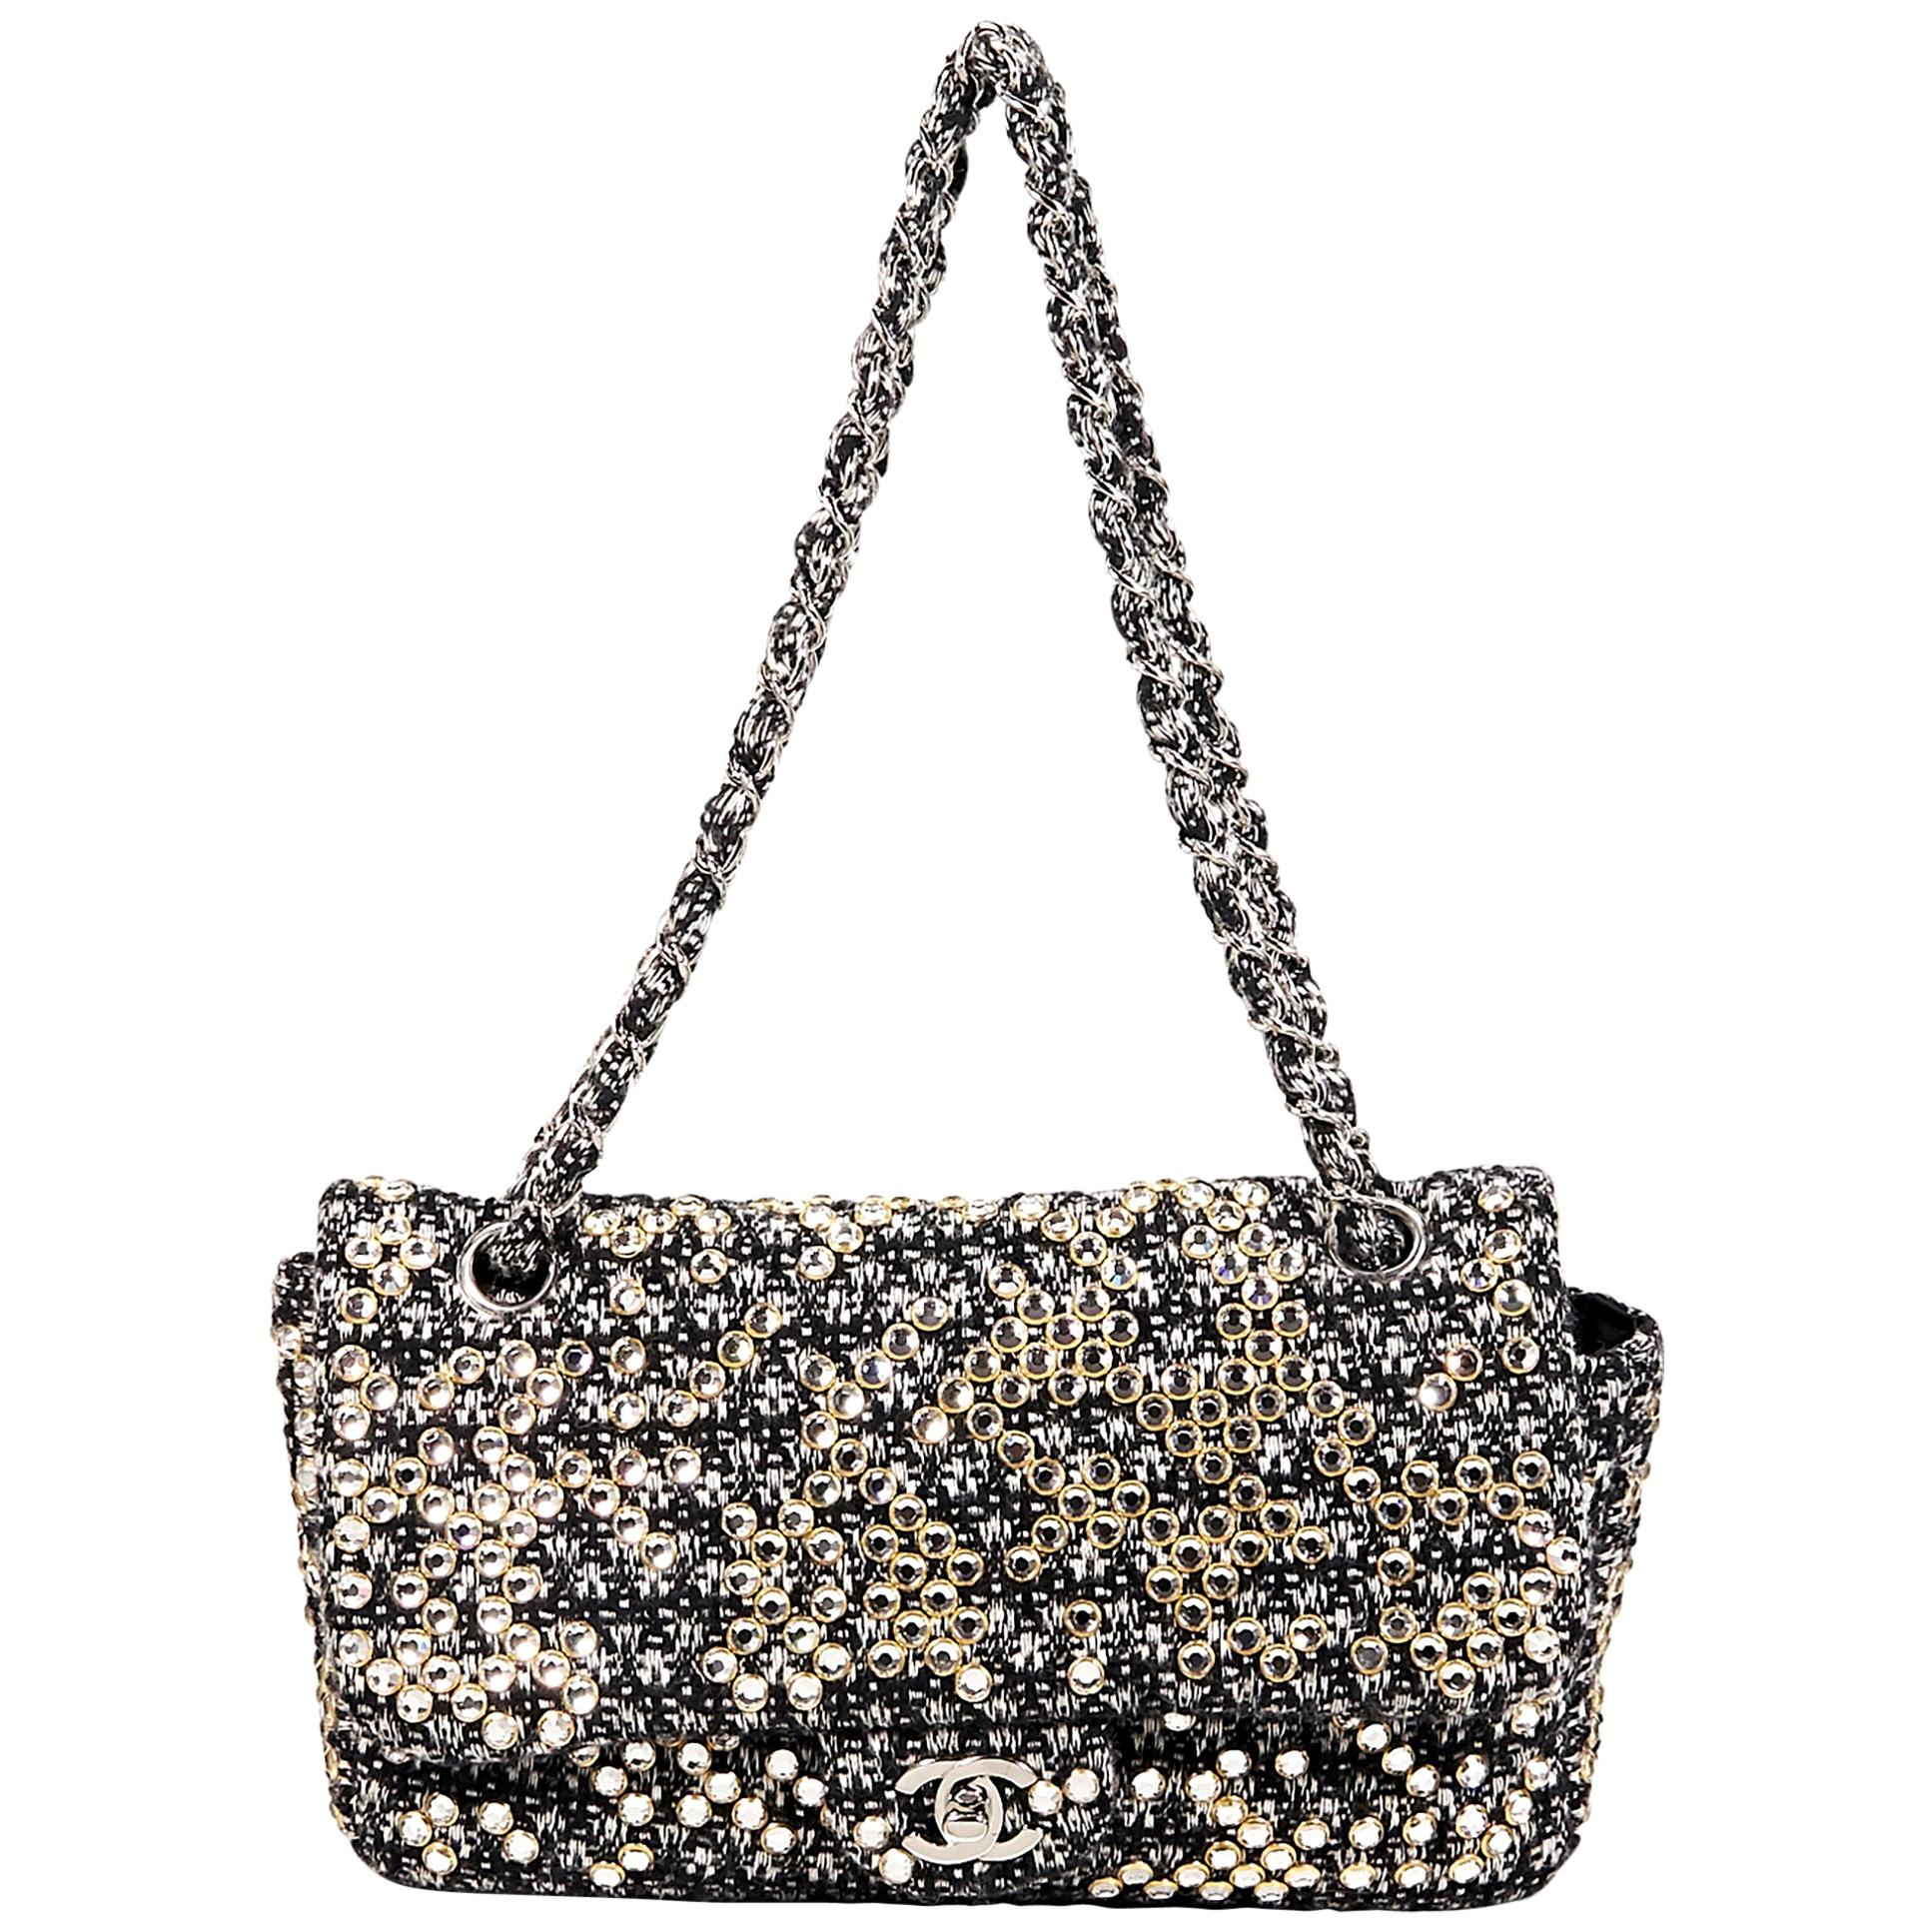 3953d1436088 Black and White Chanel Tweed Classic Flap Bag with Swarovski Crystals For  Sale at 1stdibs